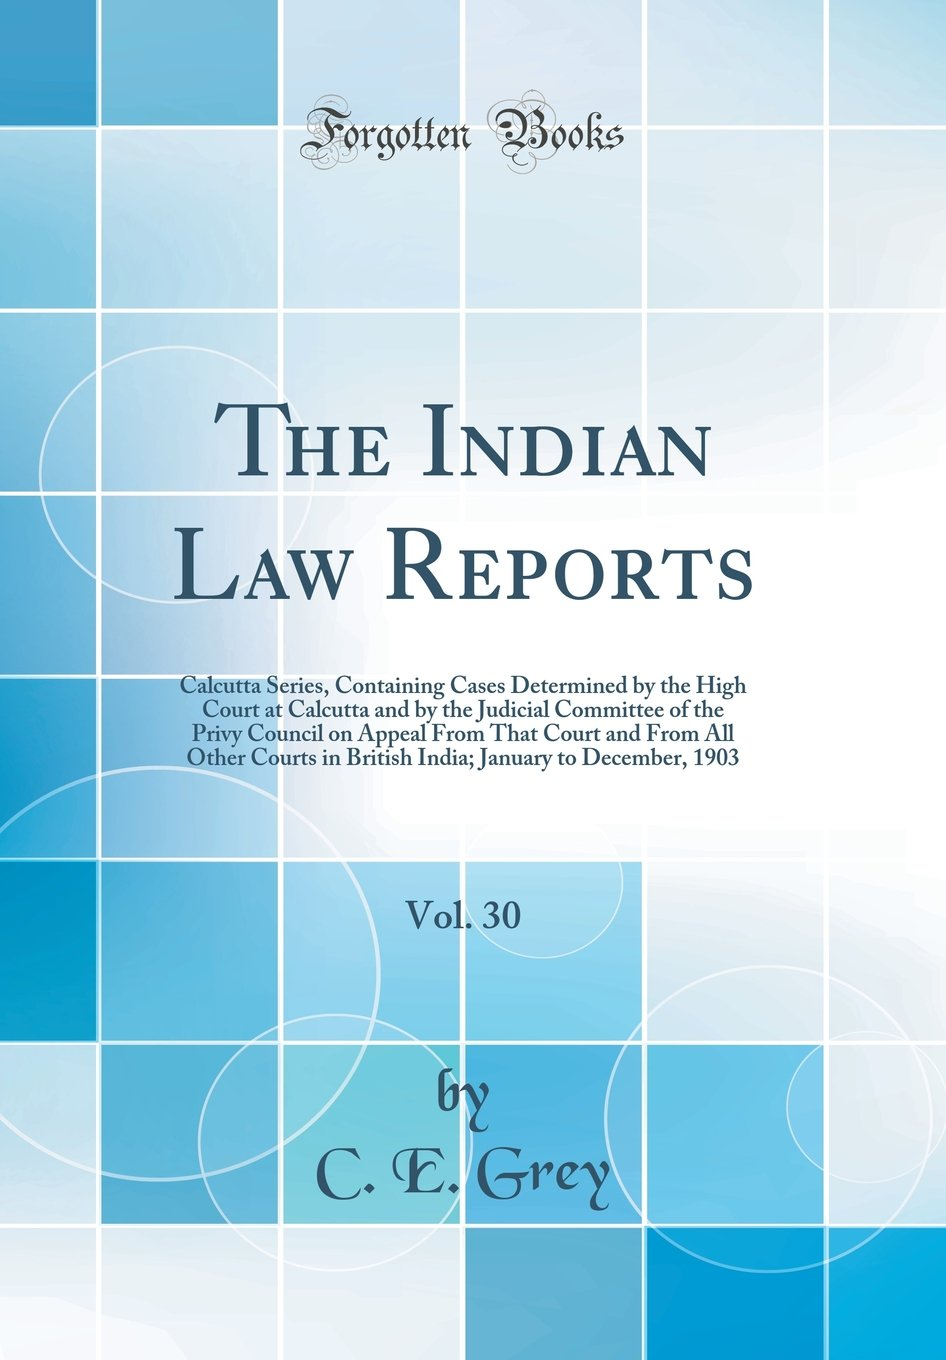 Download The Indian Law Reports, Vol. 30: Calcutta Series, Containing Cases Determined by the High Court at Calcutta and by the Judicial Committee of the Privy ... in British India; January to December, 1903 pdf